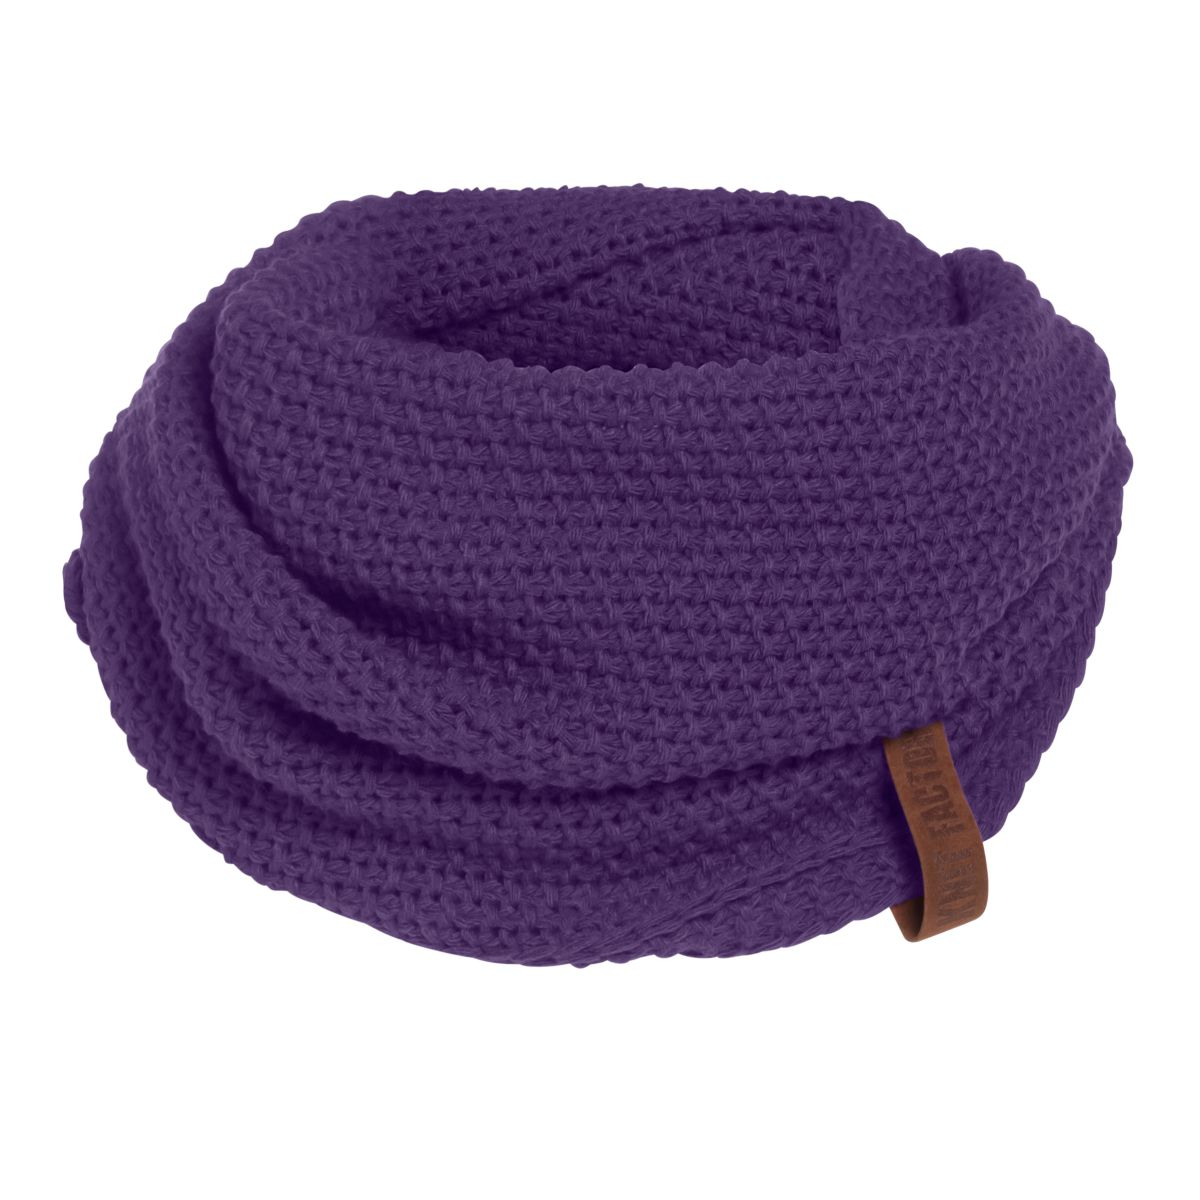 knit factory kf12006612350 coco colsjaal violet 1